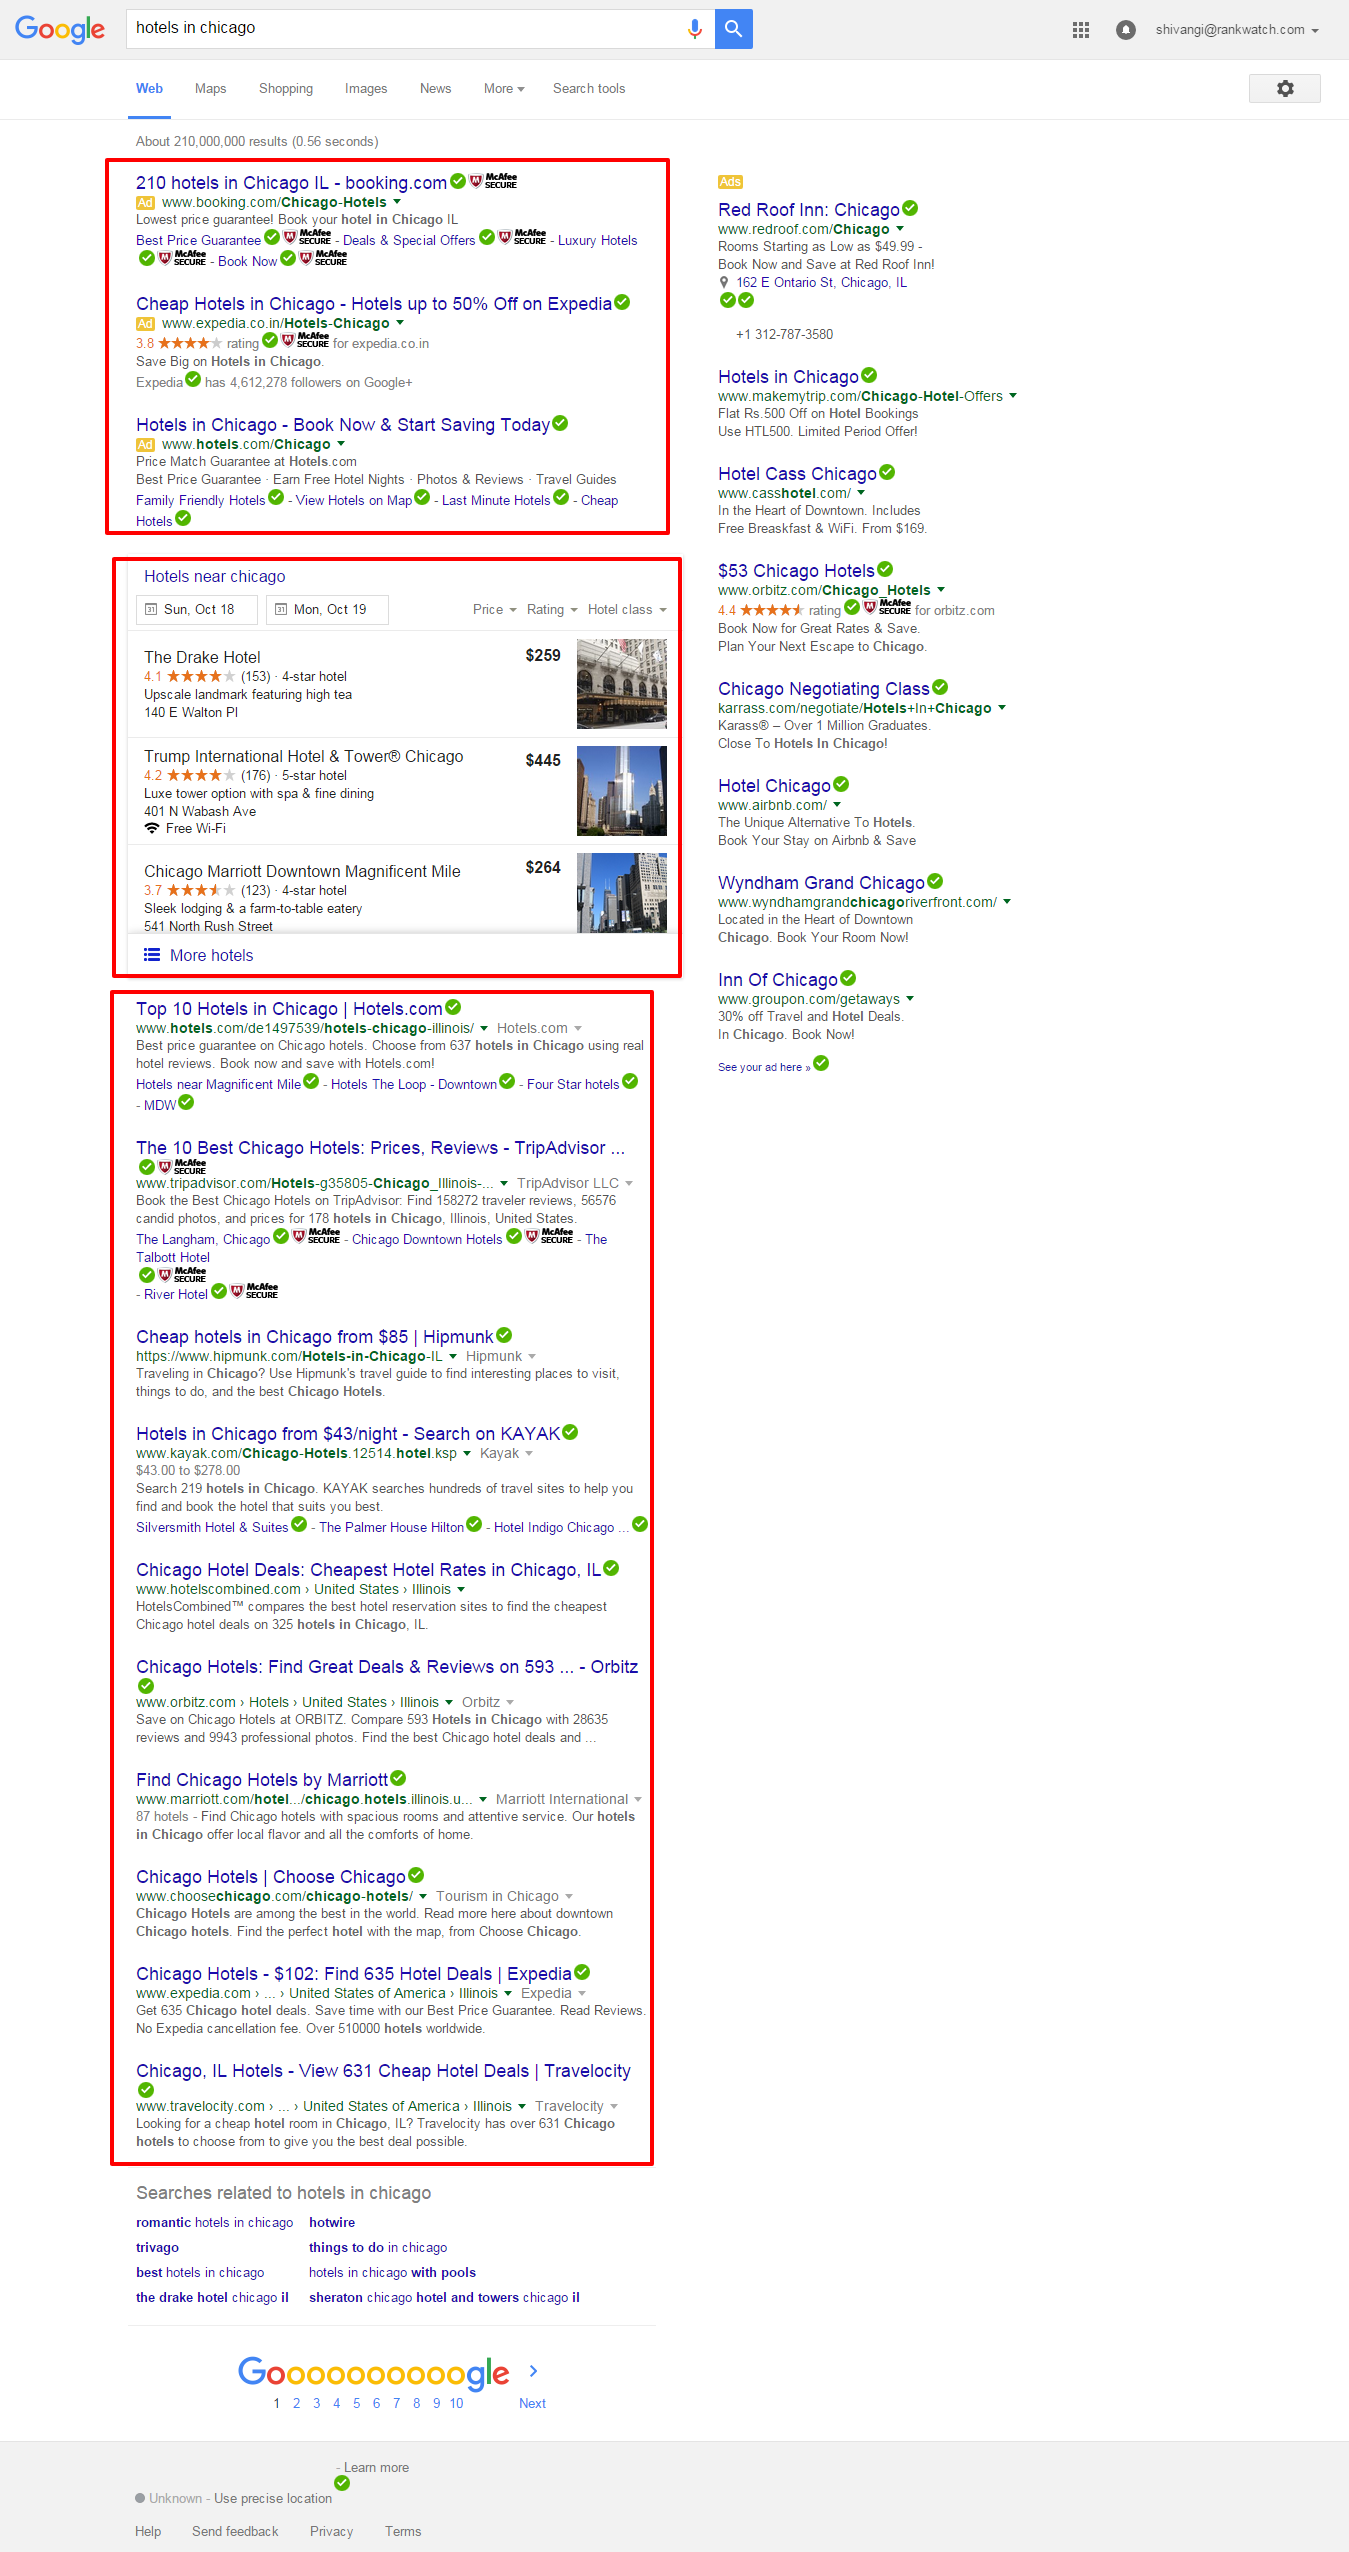 Google-search-results-for-hotels-in-chicago